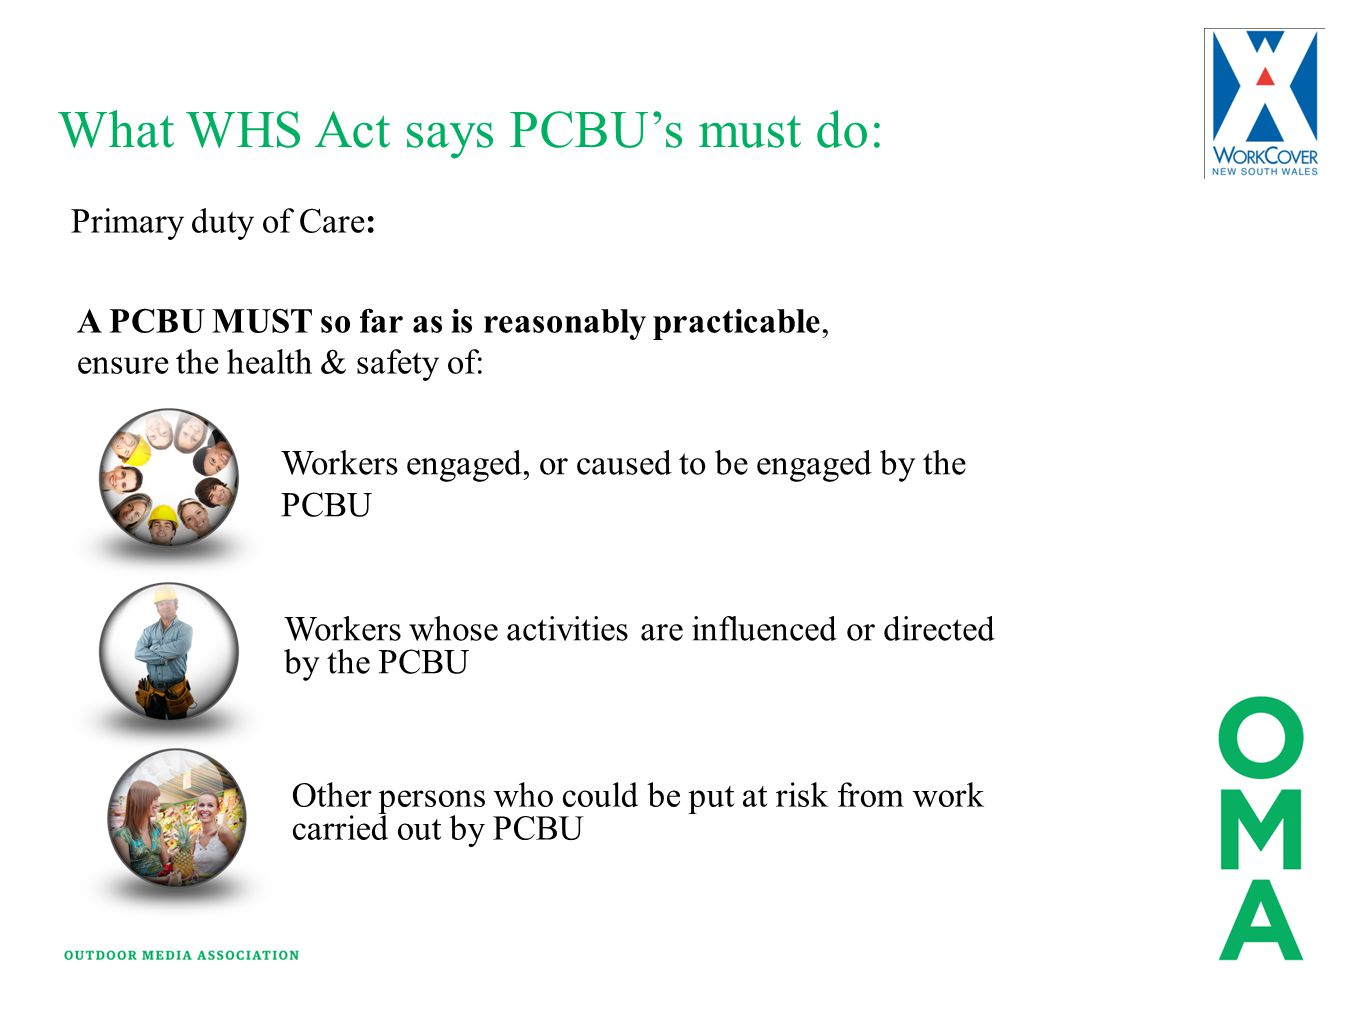 What WHS Act says PCBU's must do: